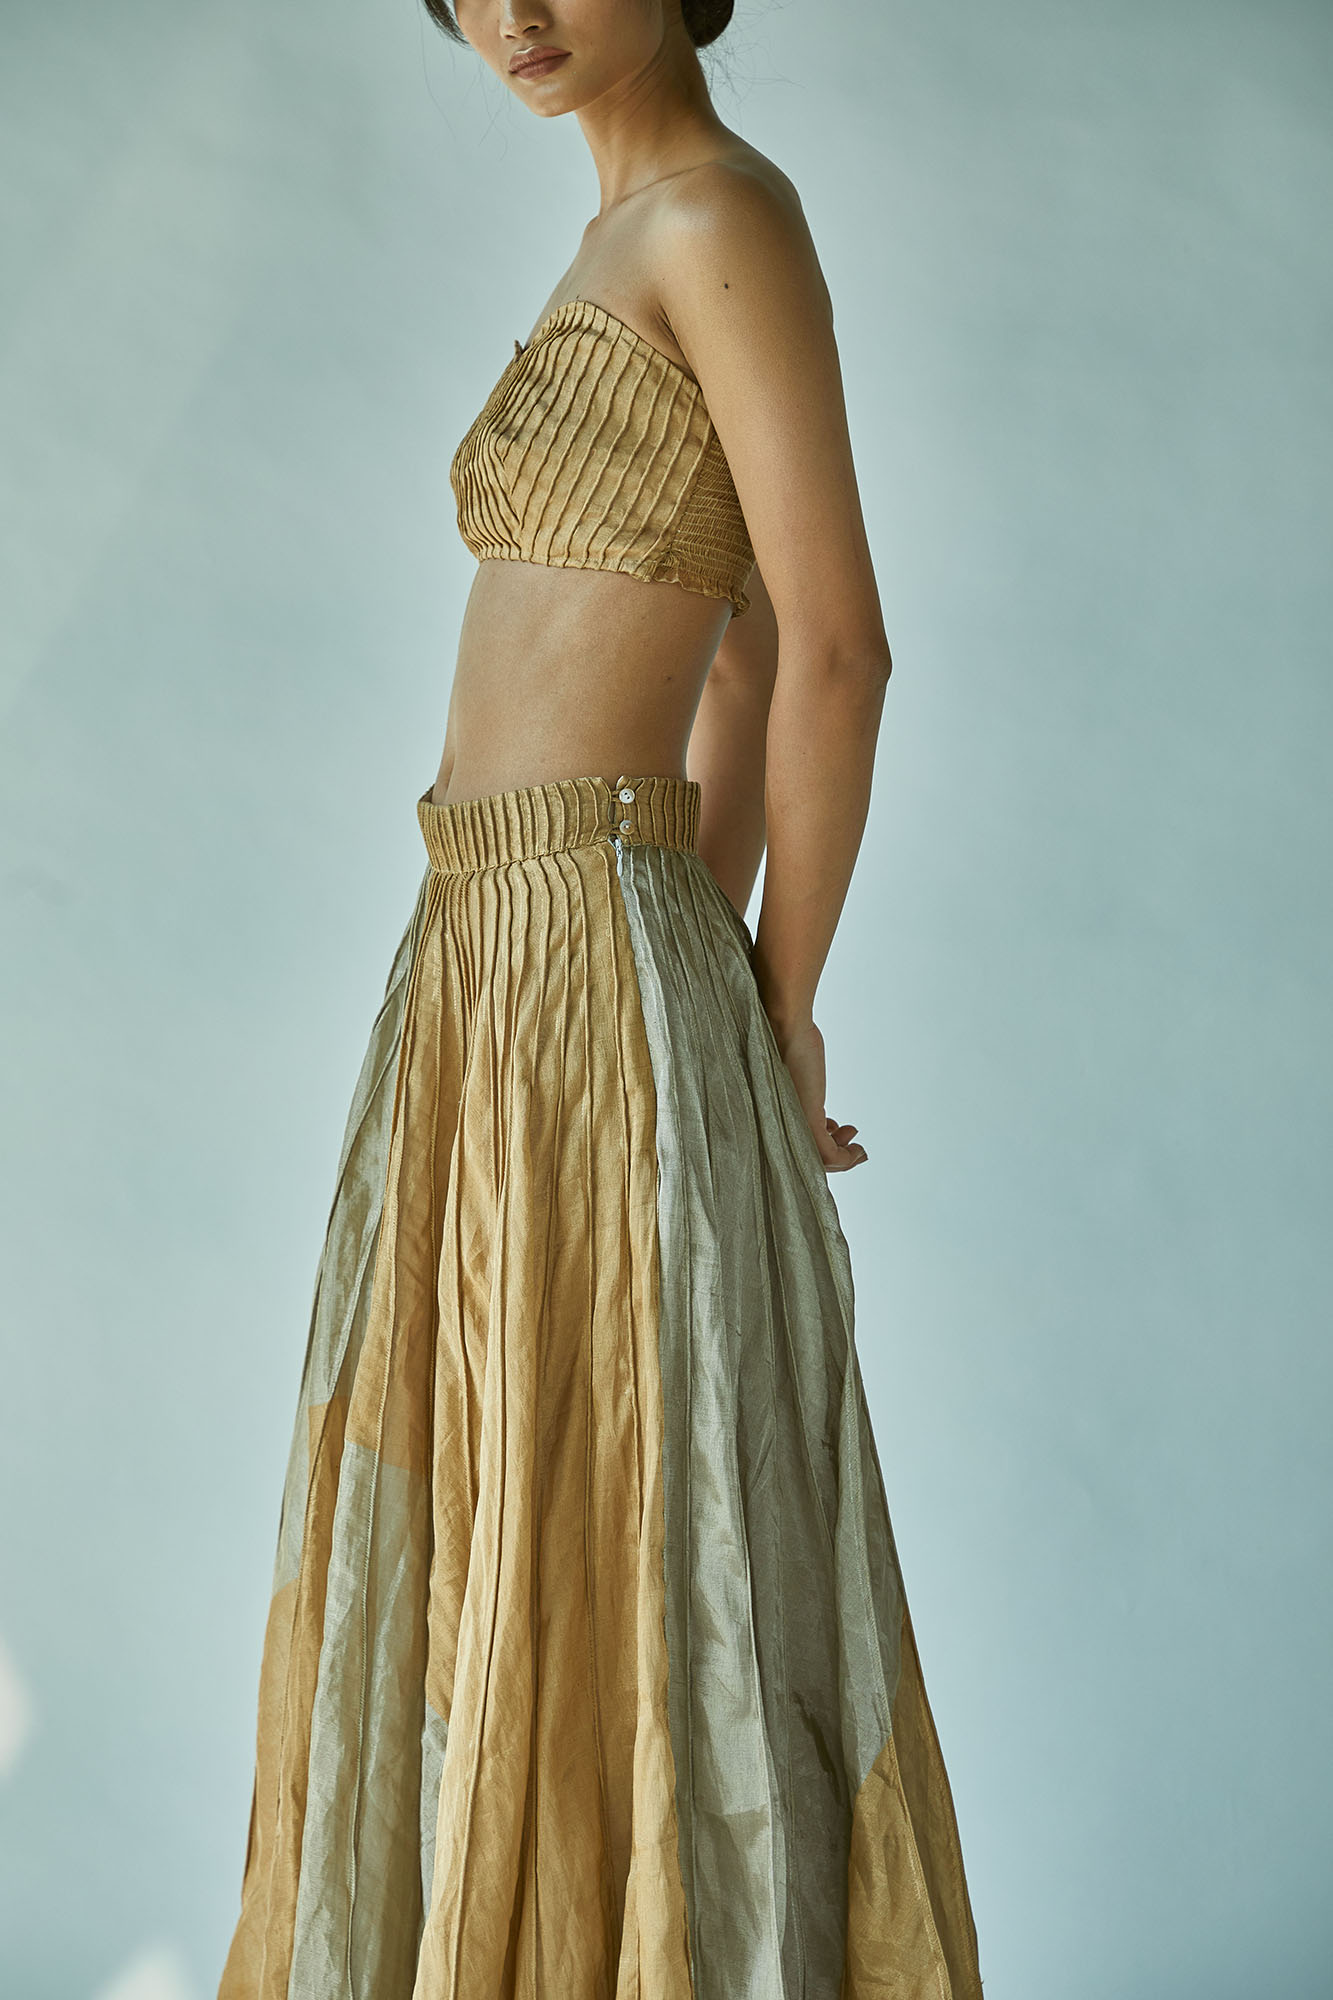 GOLD SILVER MAXI SKIRT WITH BUSTIER